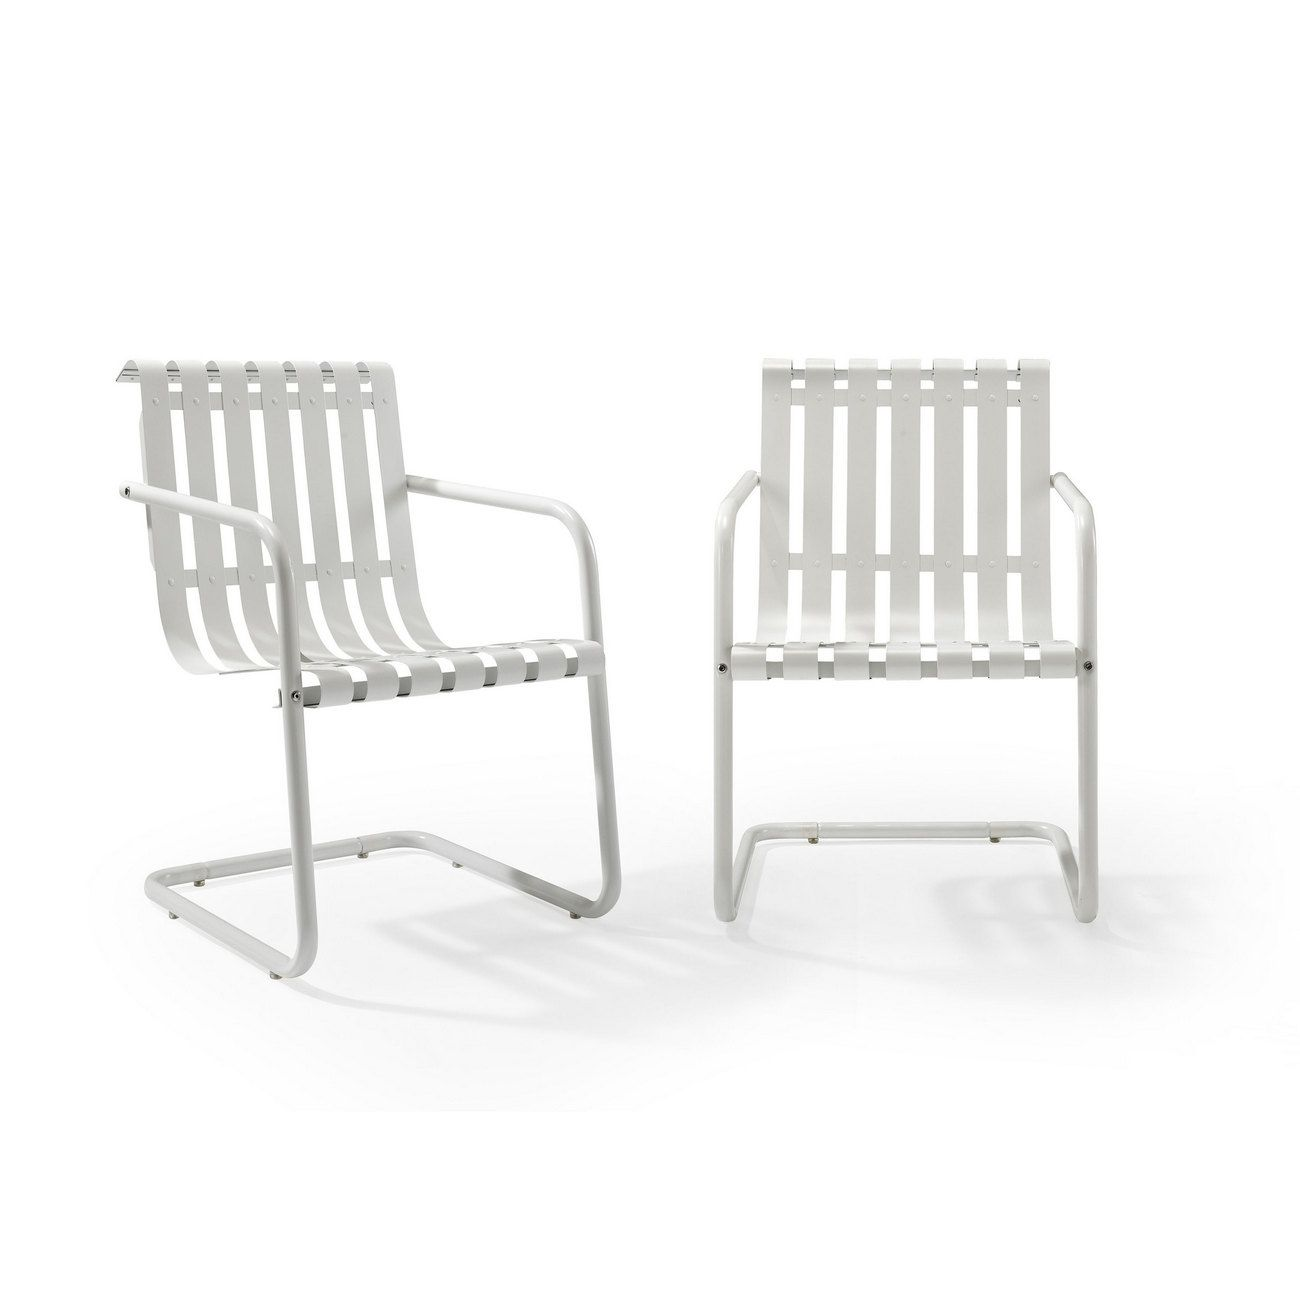 Crosley Furniture Gracie Patio Accent Chair Set Of 2 I: Gracie Stainless Steel Chair In White (Set Of 2)